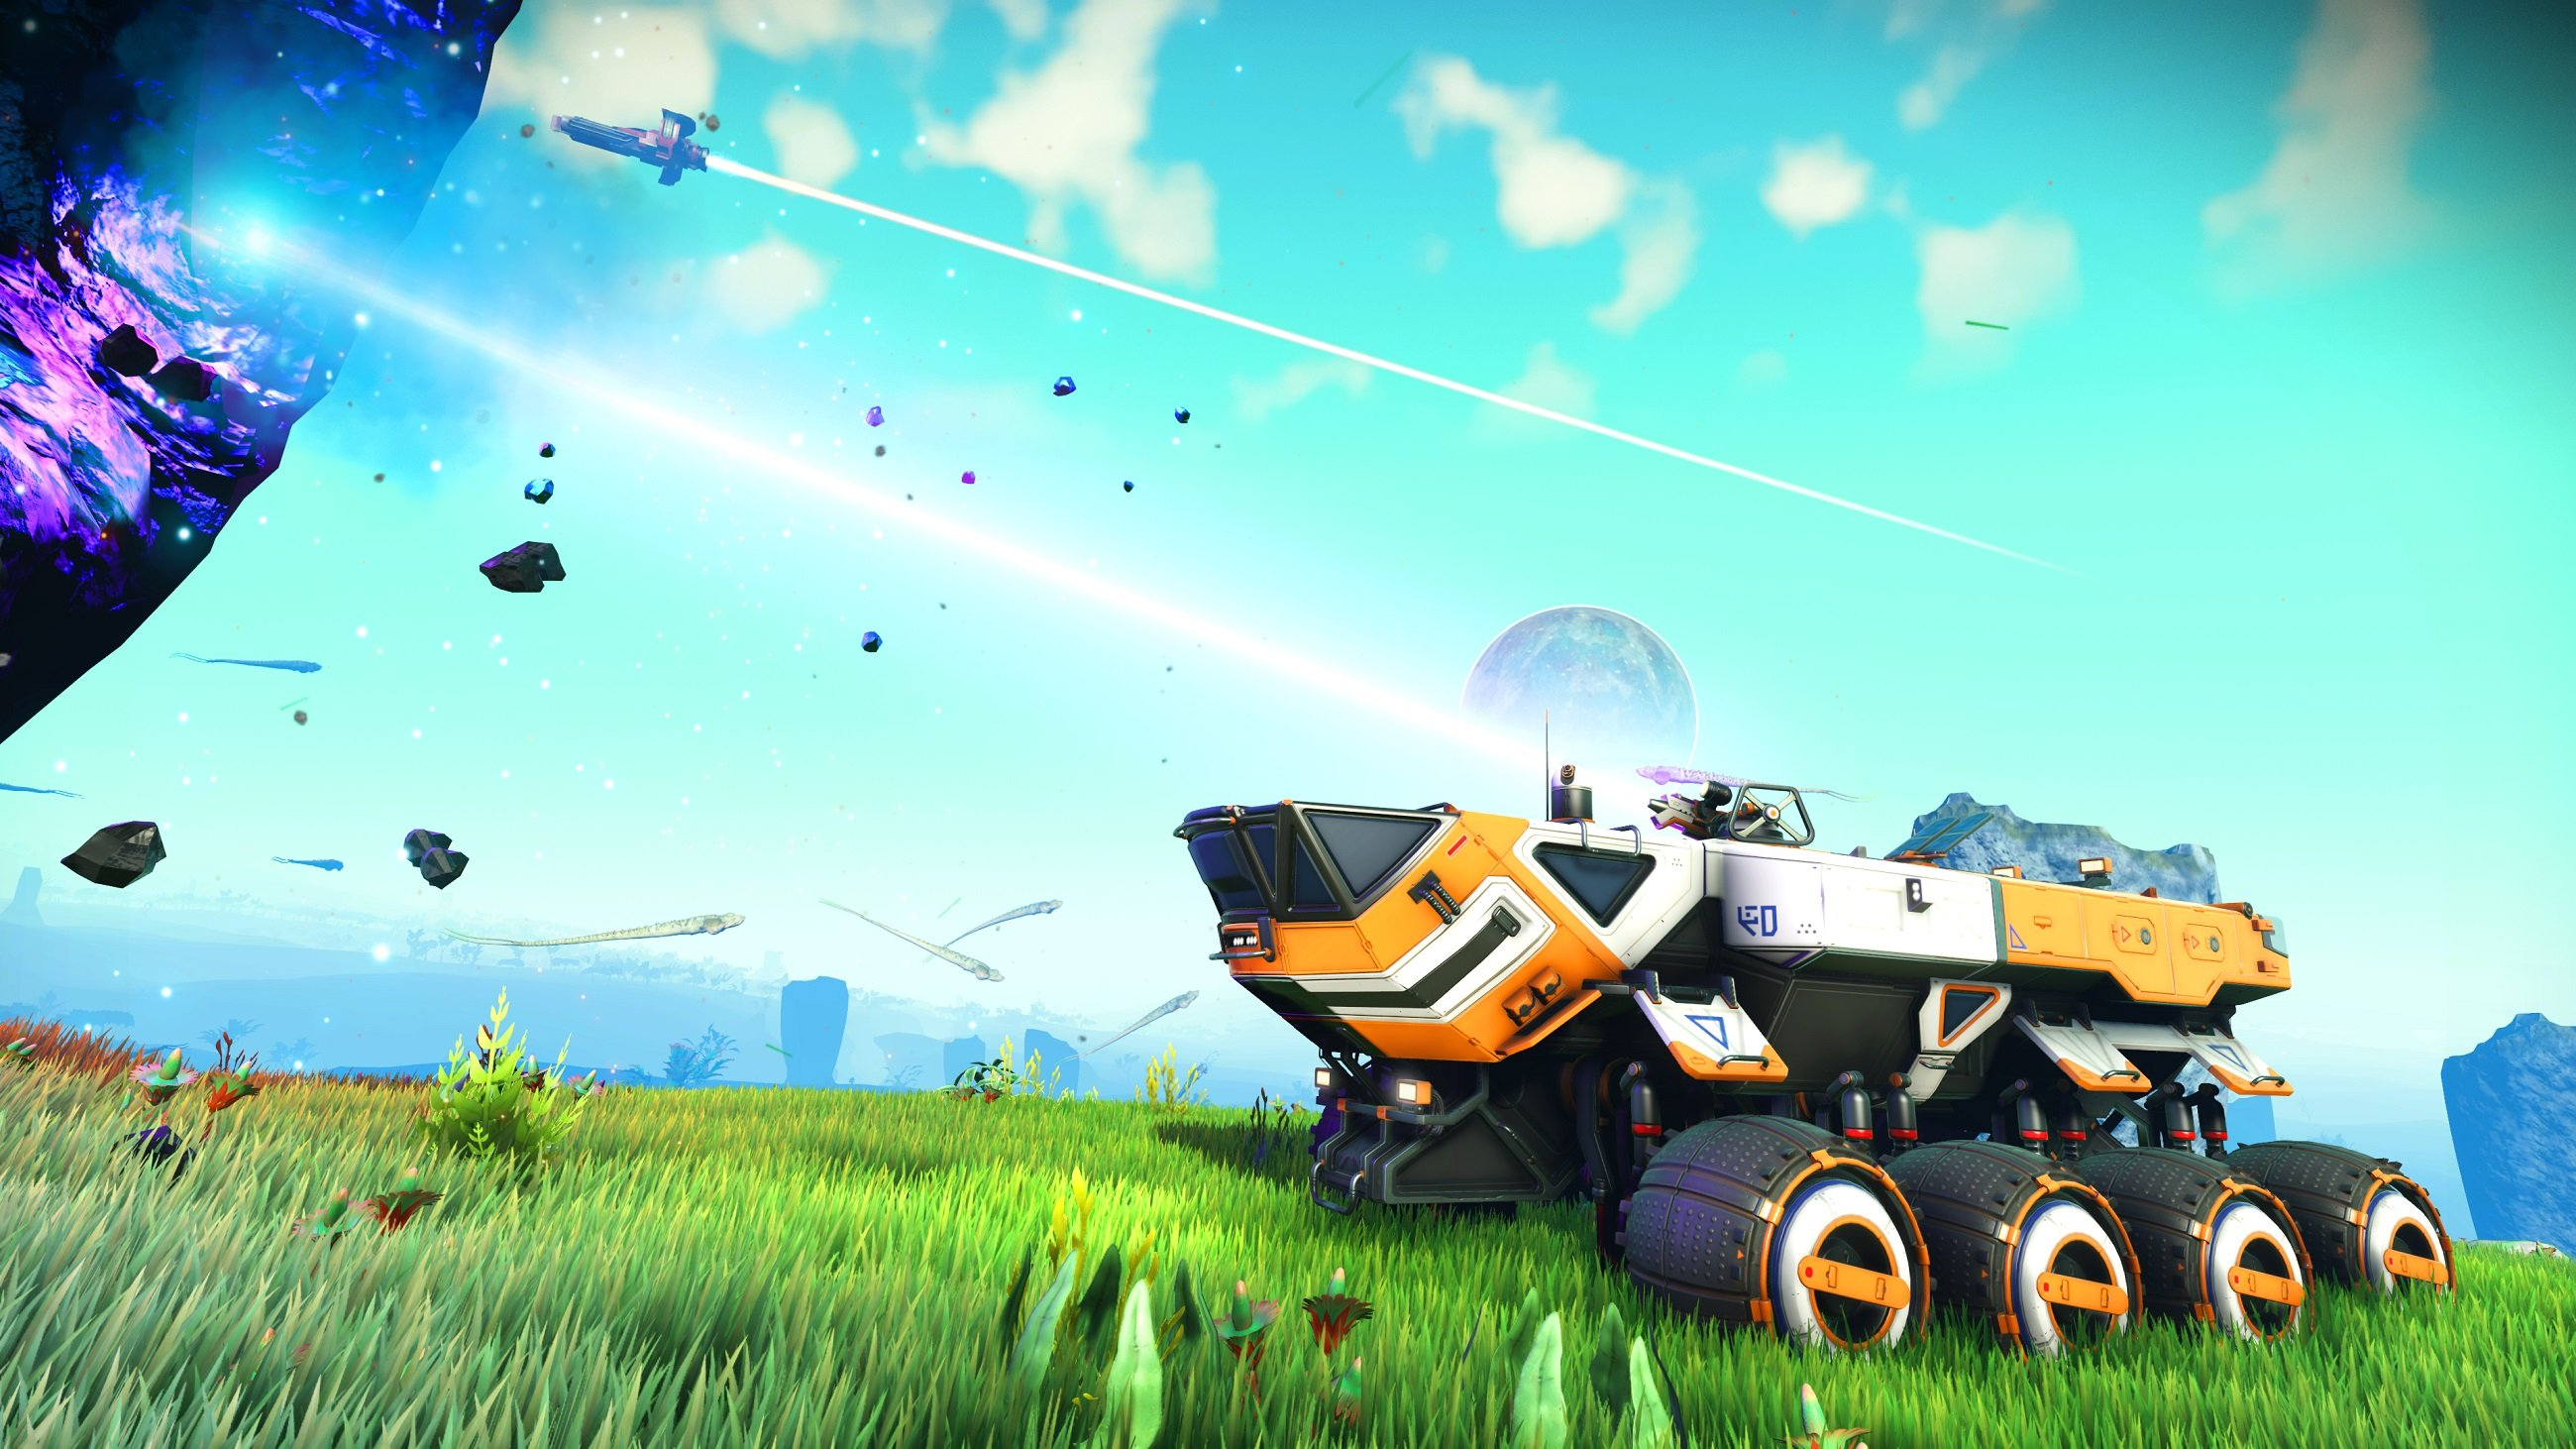 How to get an exocraft vehicle in No Man's Sky